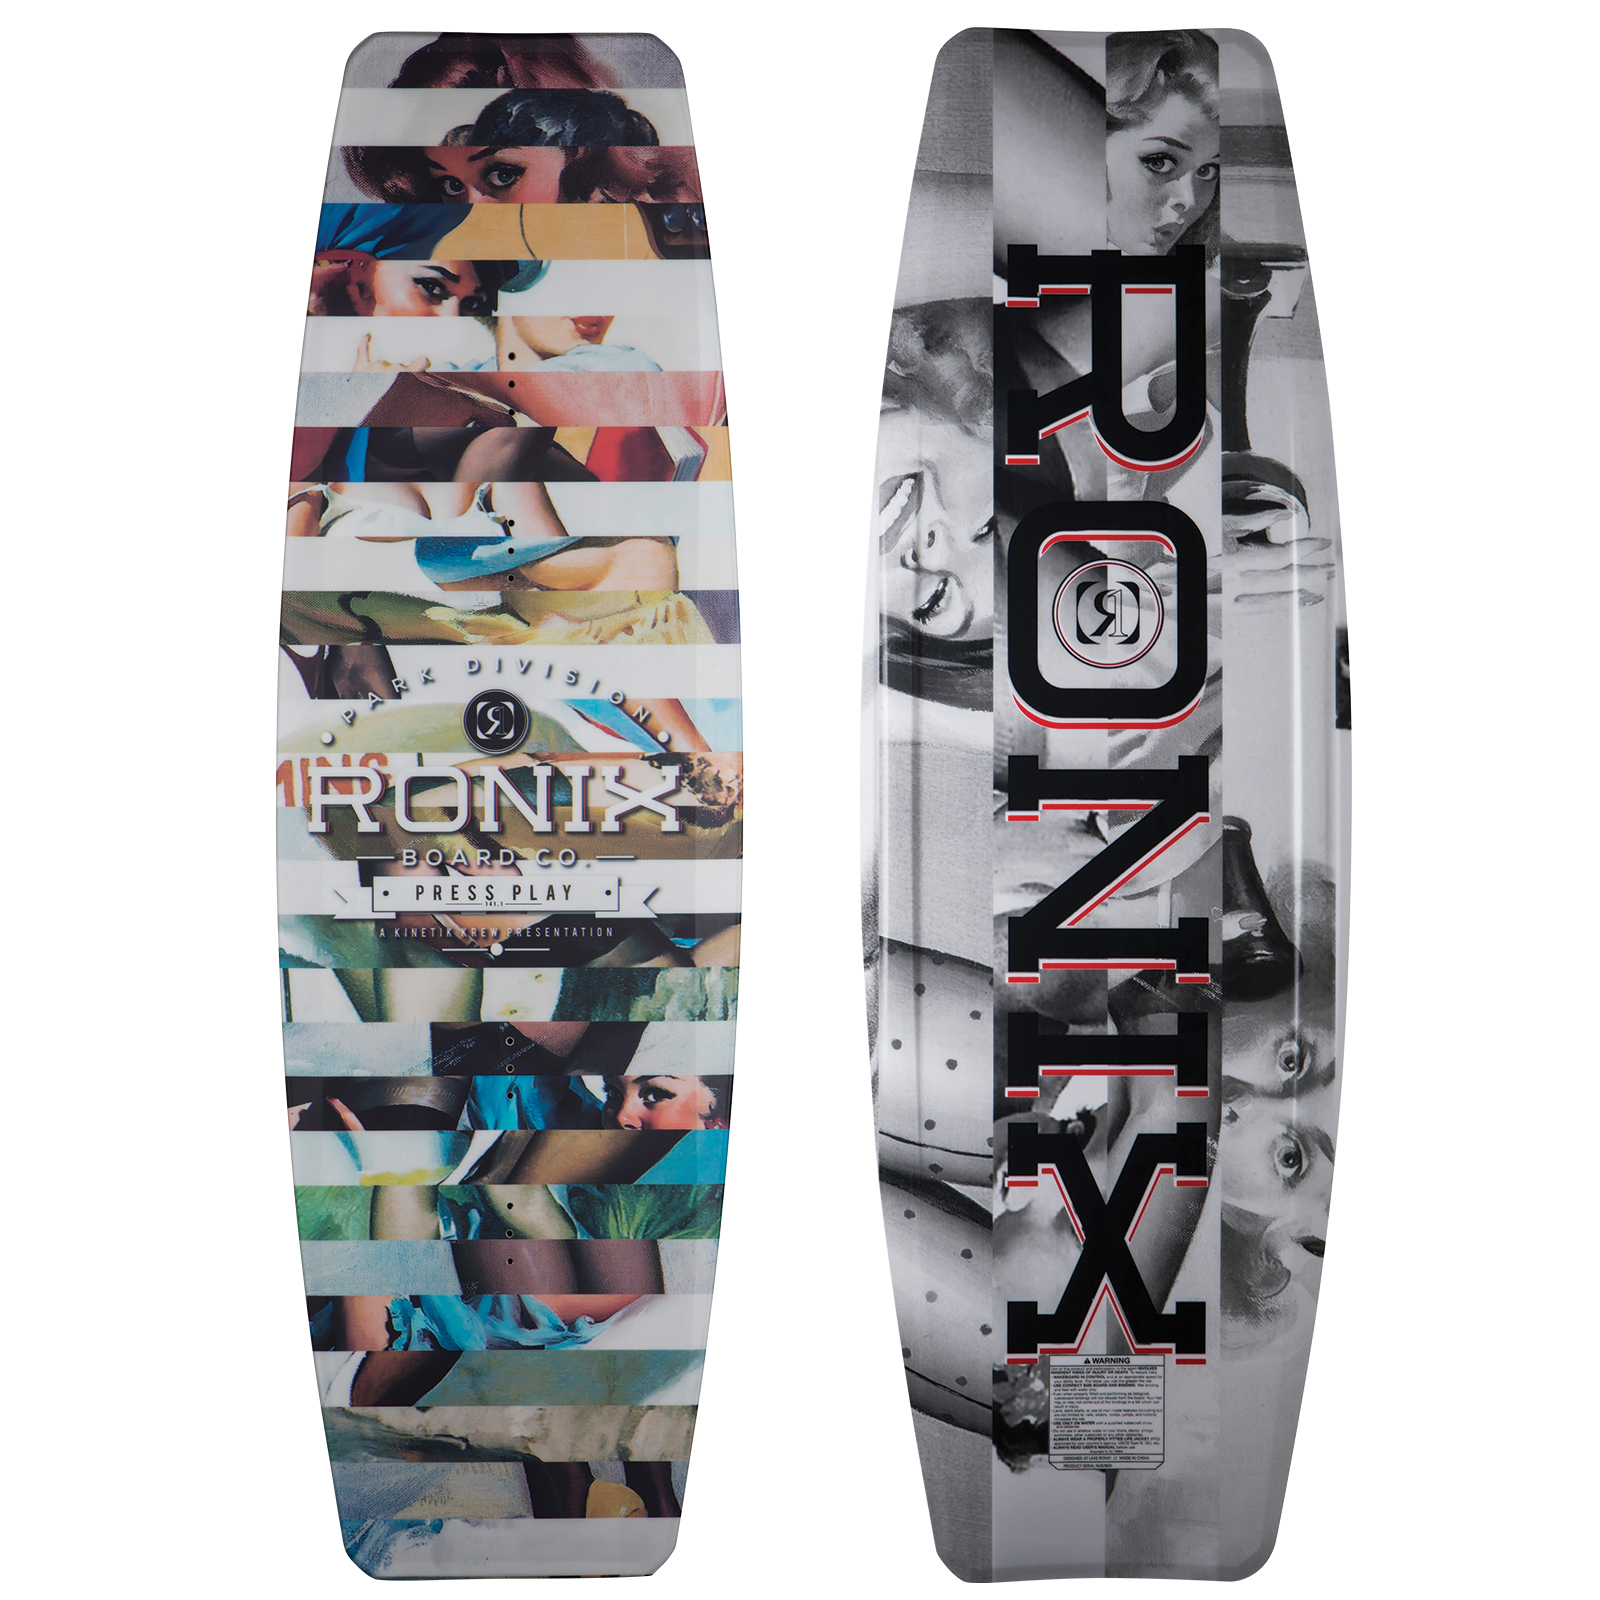 PRESS PLAY ATR EDITION WAKEBOARD RONIX 2018